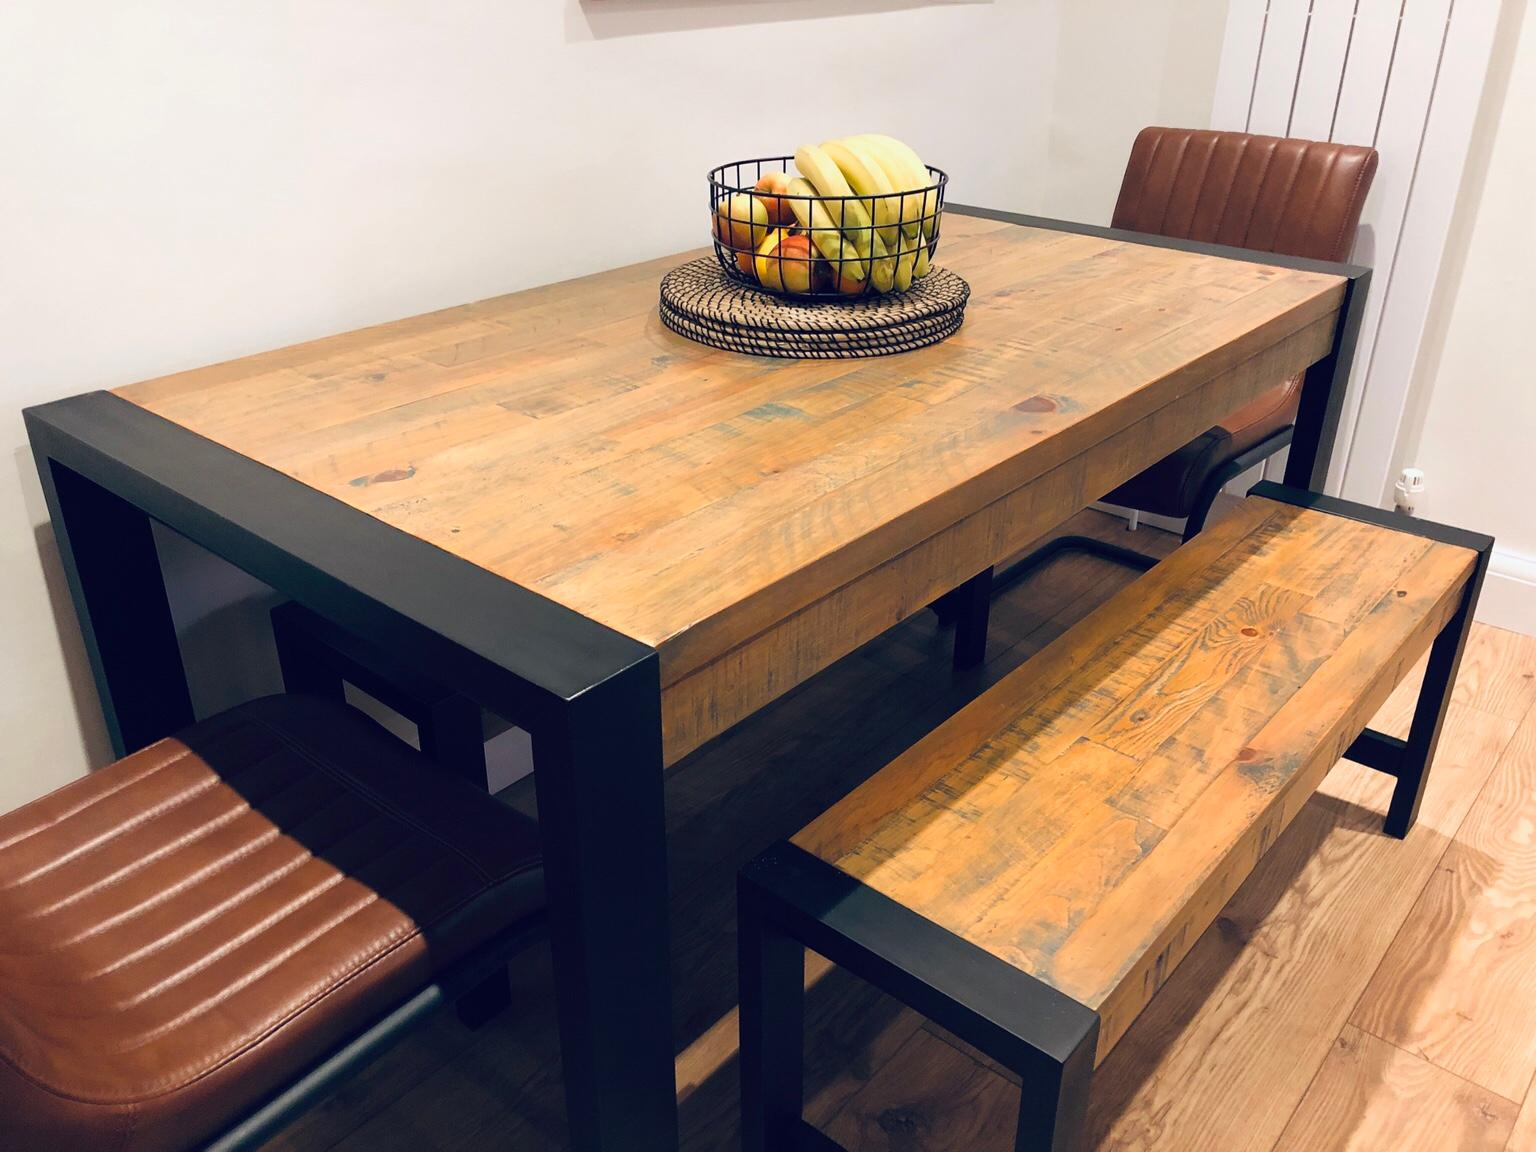 Next Hudson Dining Table And Bench Set, Hudson Dining Room Furniture